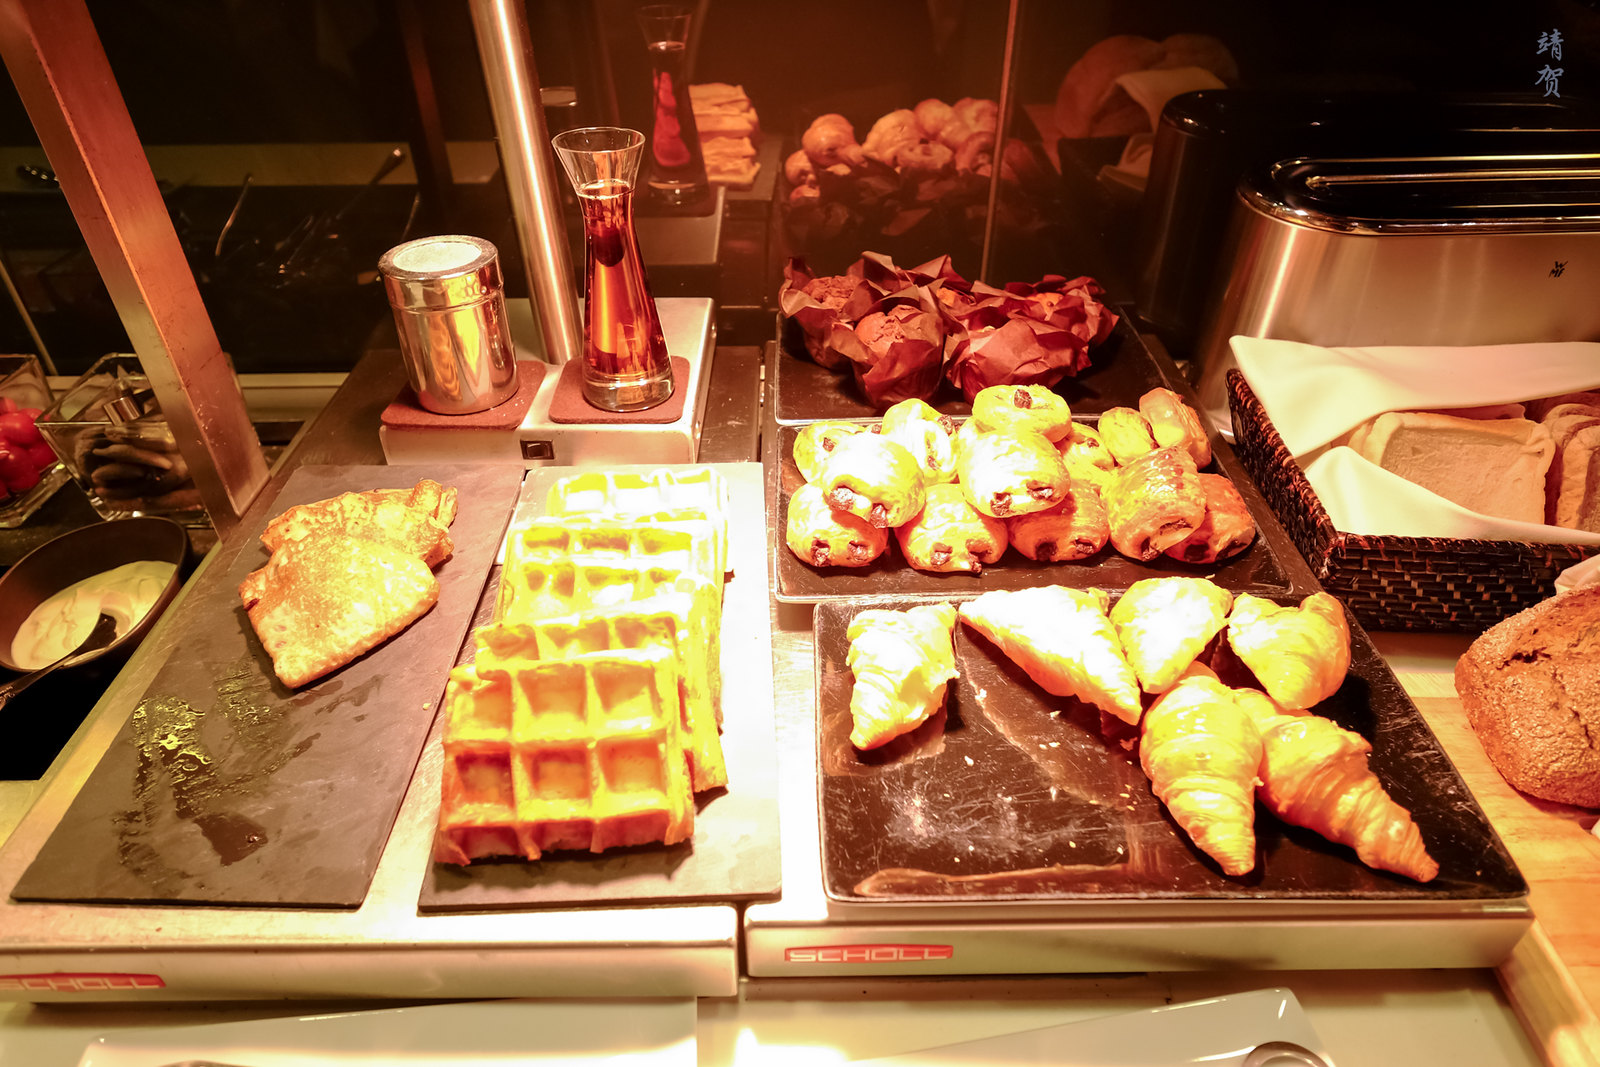 Crepes, waffles and pastries